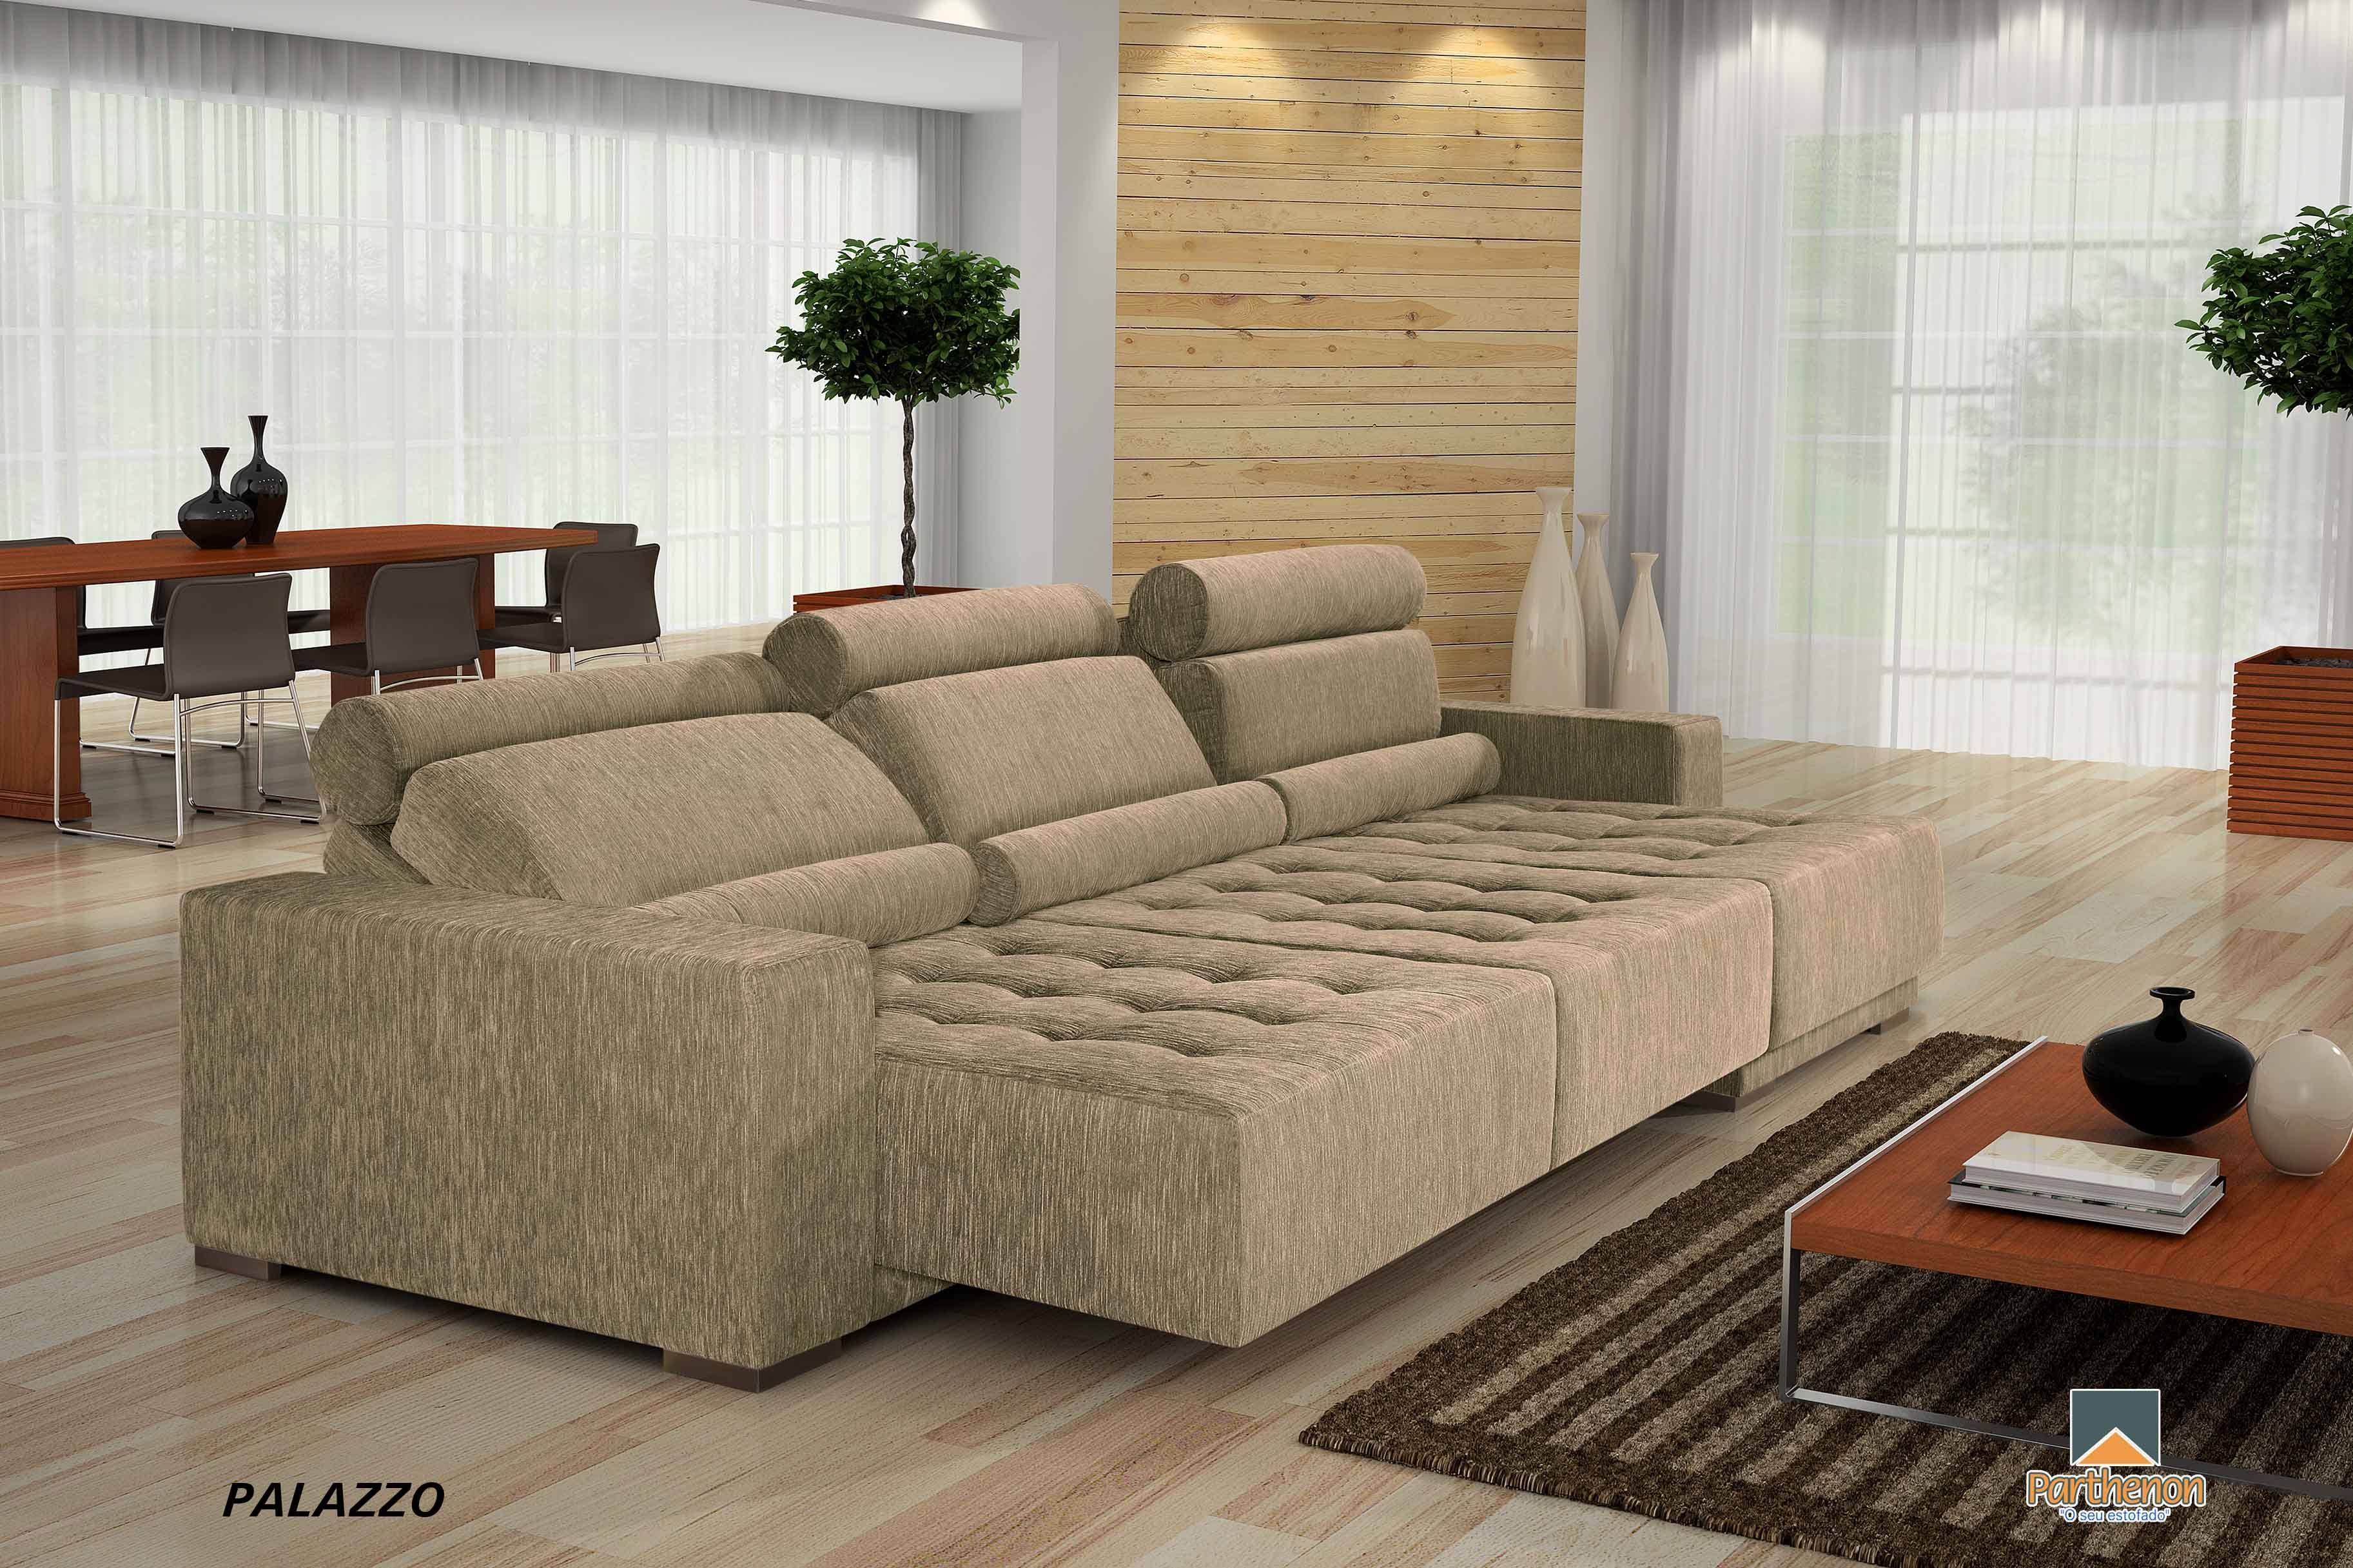 Sofa Couches Home Design Pictures Sofa   Fastaanytimelock.com